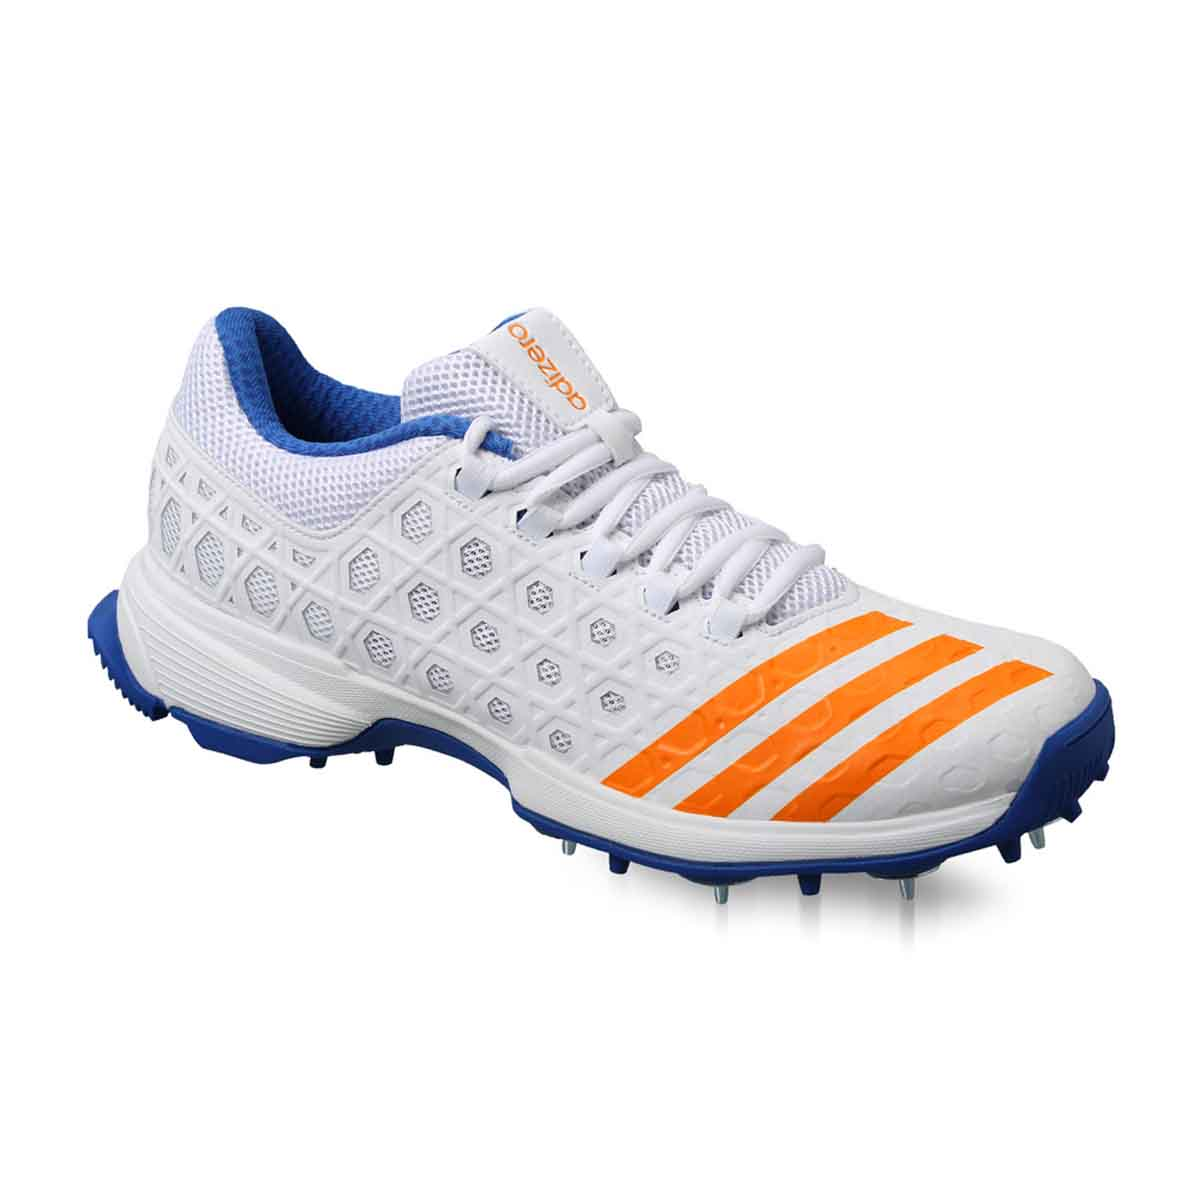 bc126043890ca Buy Adidas SL22 Cricket Shoes (White Blue) Online India